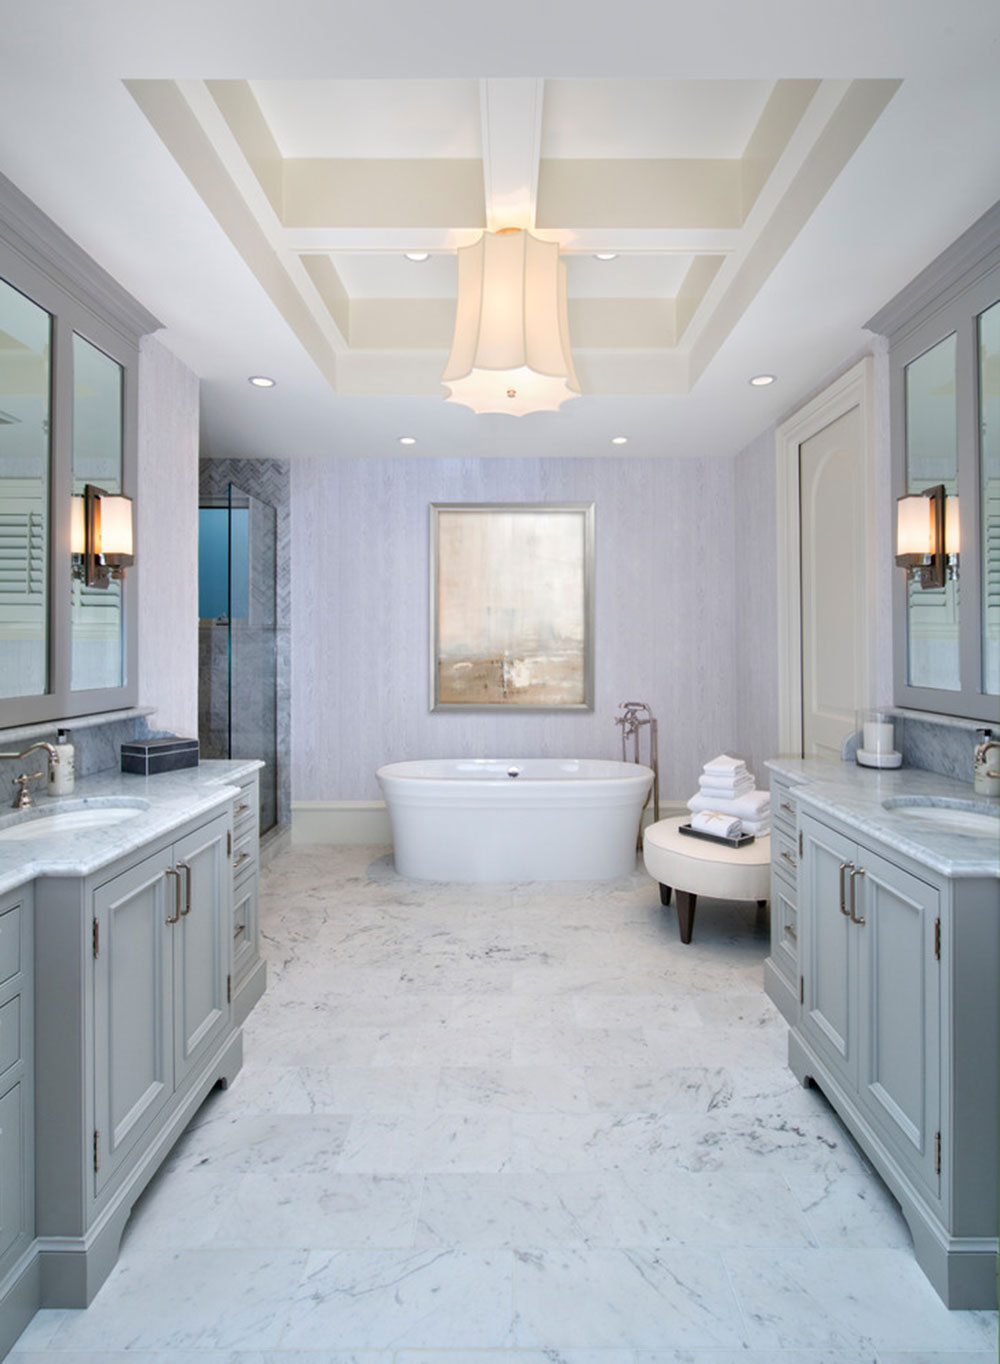 the bathroom remodeling cost and how much you'll need to spend